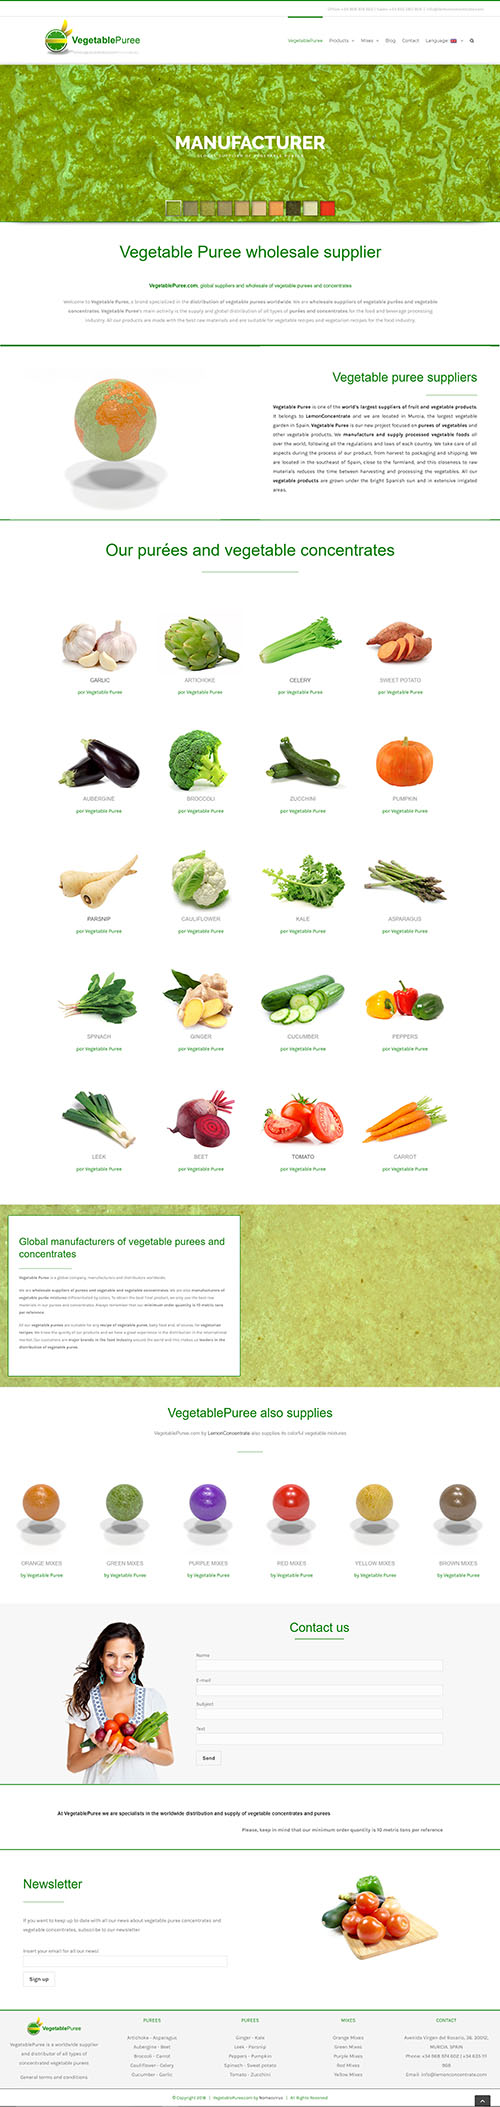 VegetablePuree - Desarrollo web a medida